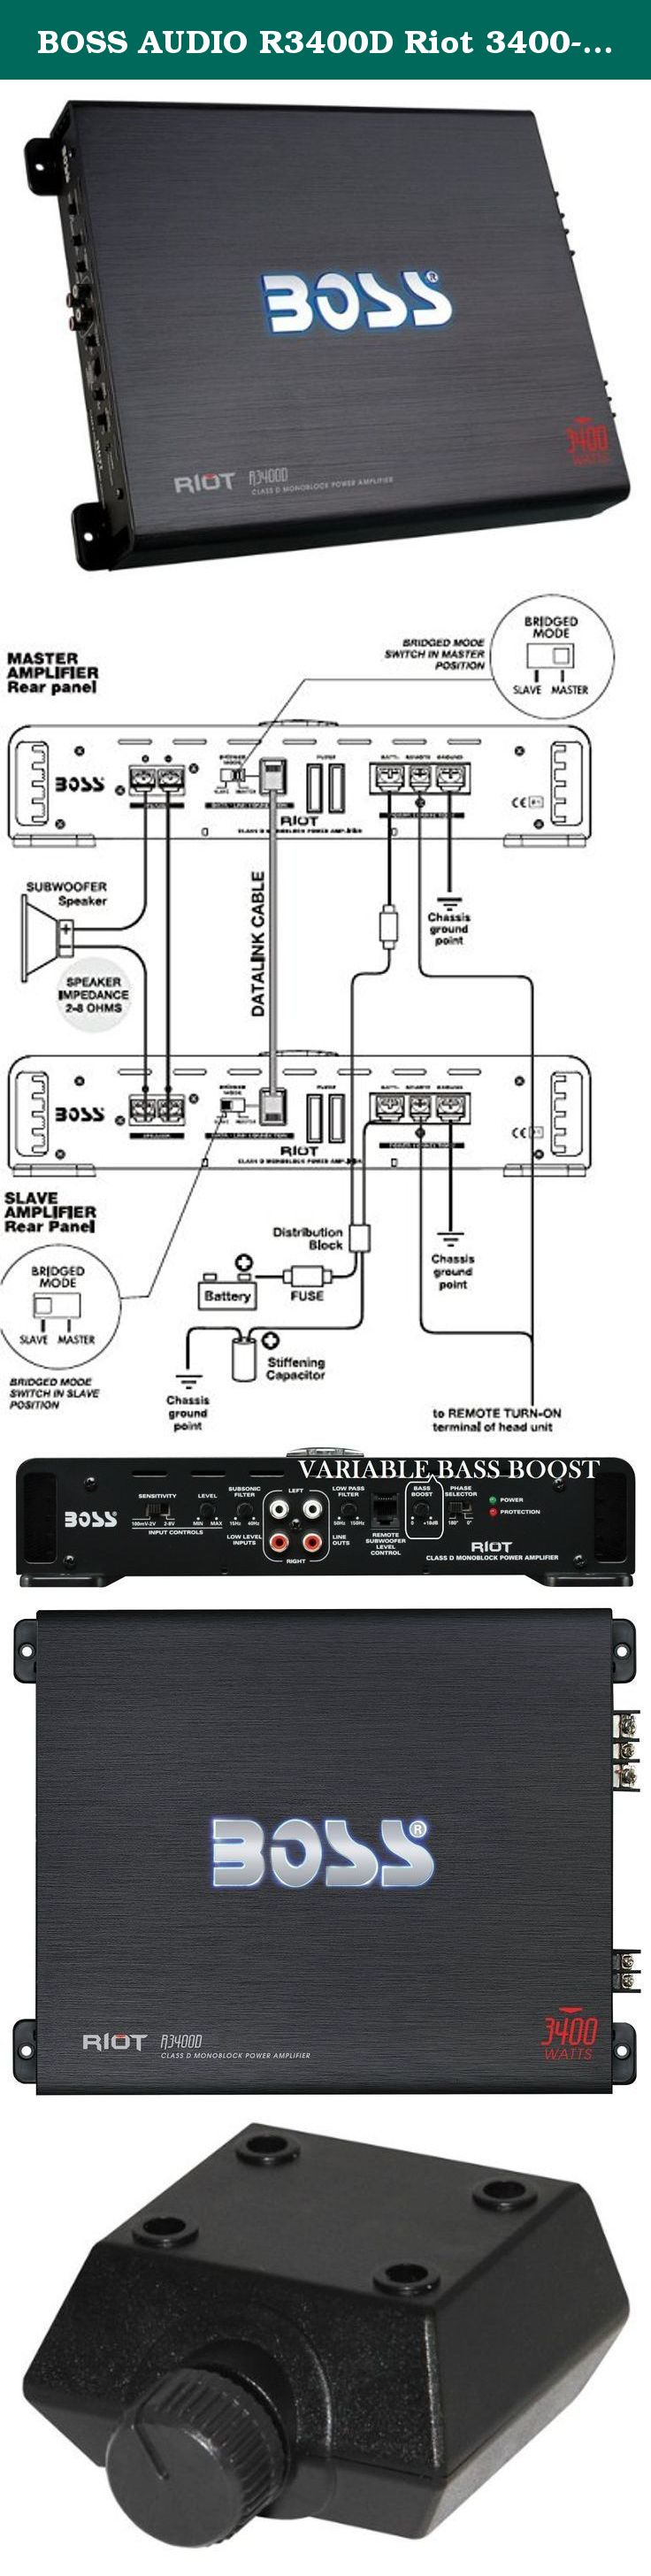 Boss Audio R3400d Riot 3400 Watt Monoblock Class D Mono Wiring Diagram For 12 4 Ohm Subwoofer 1 To 8 Stable